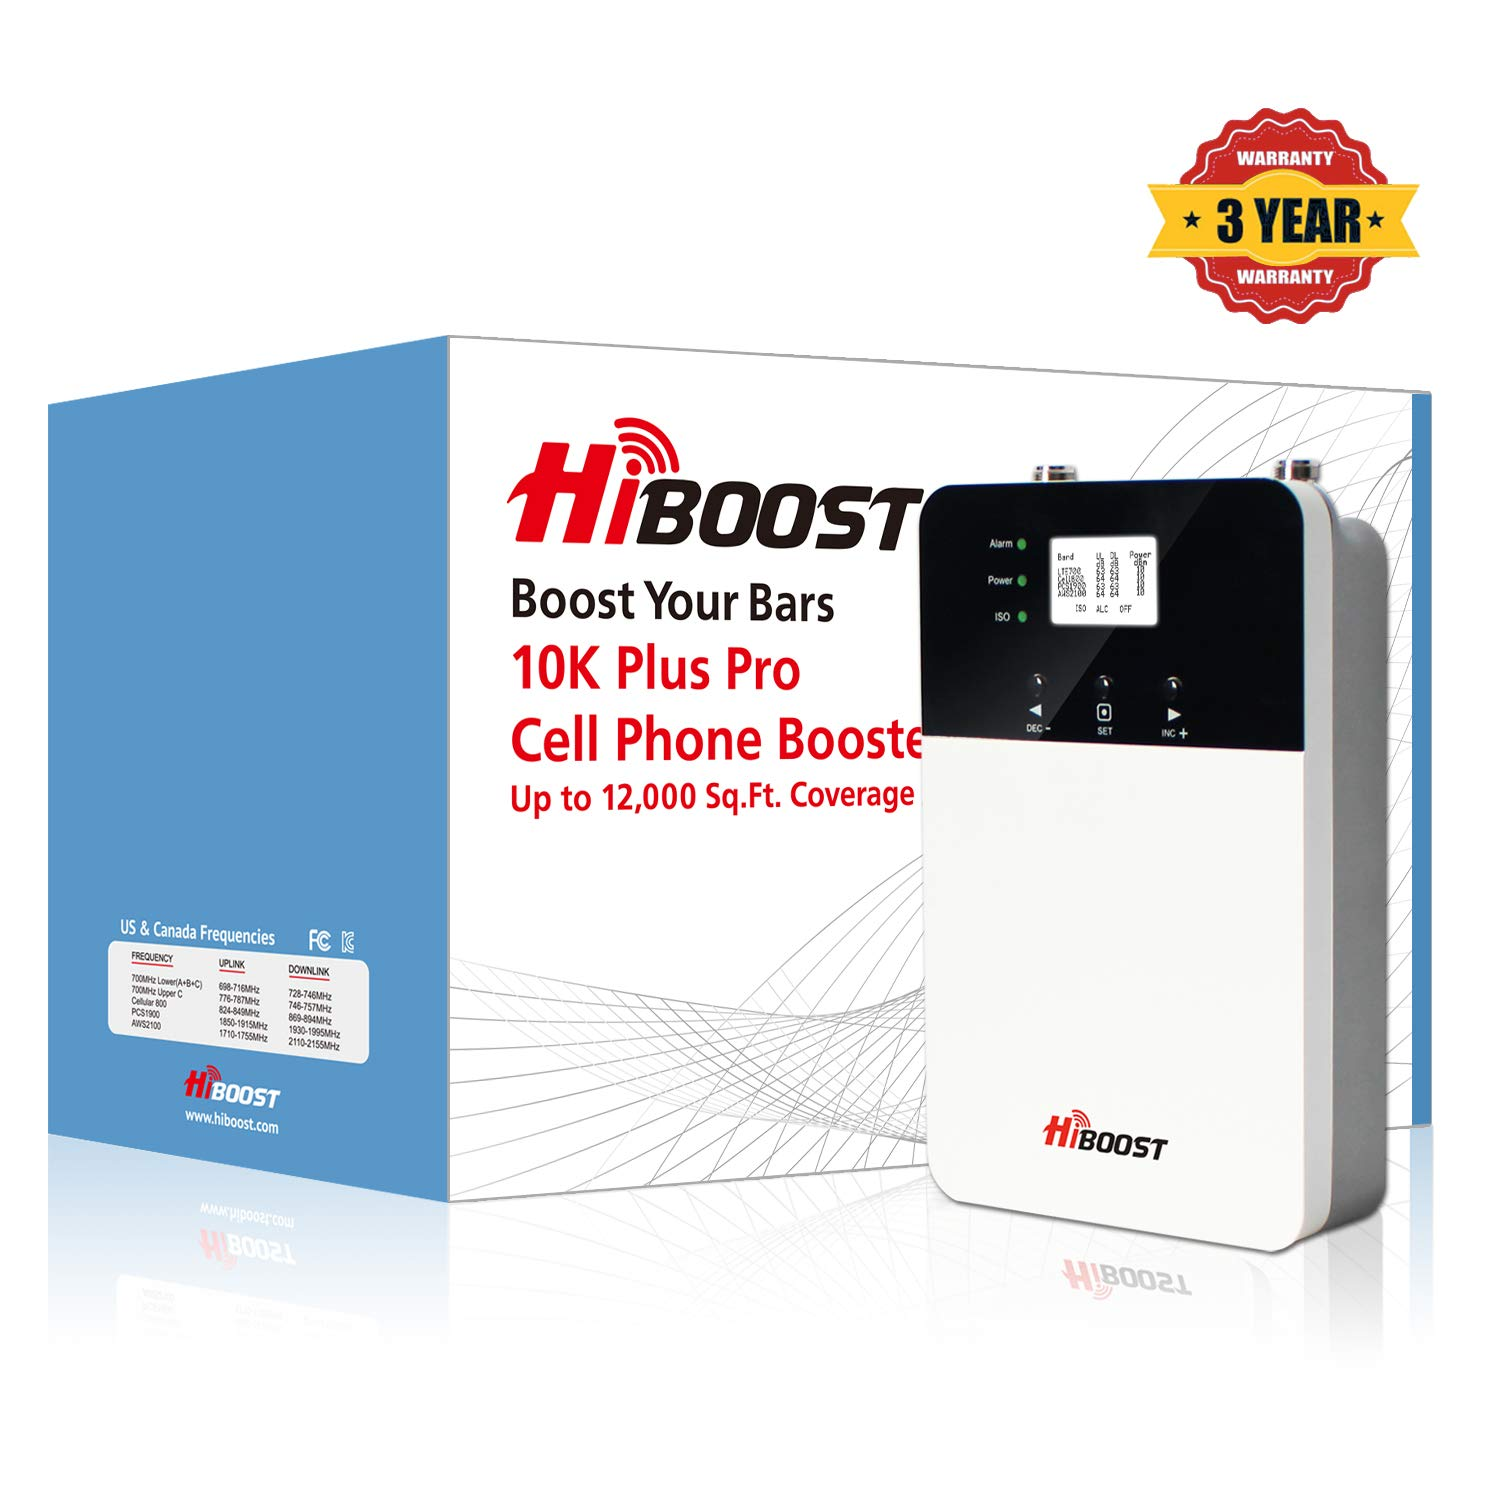 10K Plus Pro Signal Booster, HiBoost App Helps Fine Tune Max Power for Best Coverage, Cell Booster Improve Phone Signal for Home and Office up to 6,000~12,000 Sq.Ft Cell Phone Booster for All Carriers by HiBoost